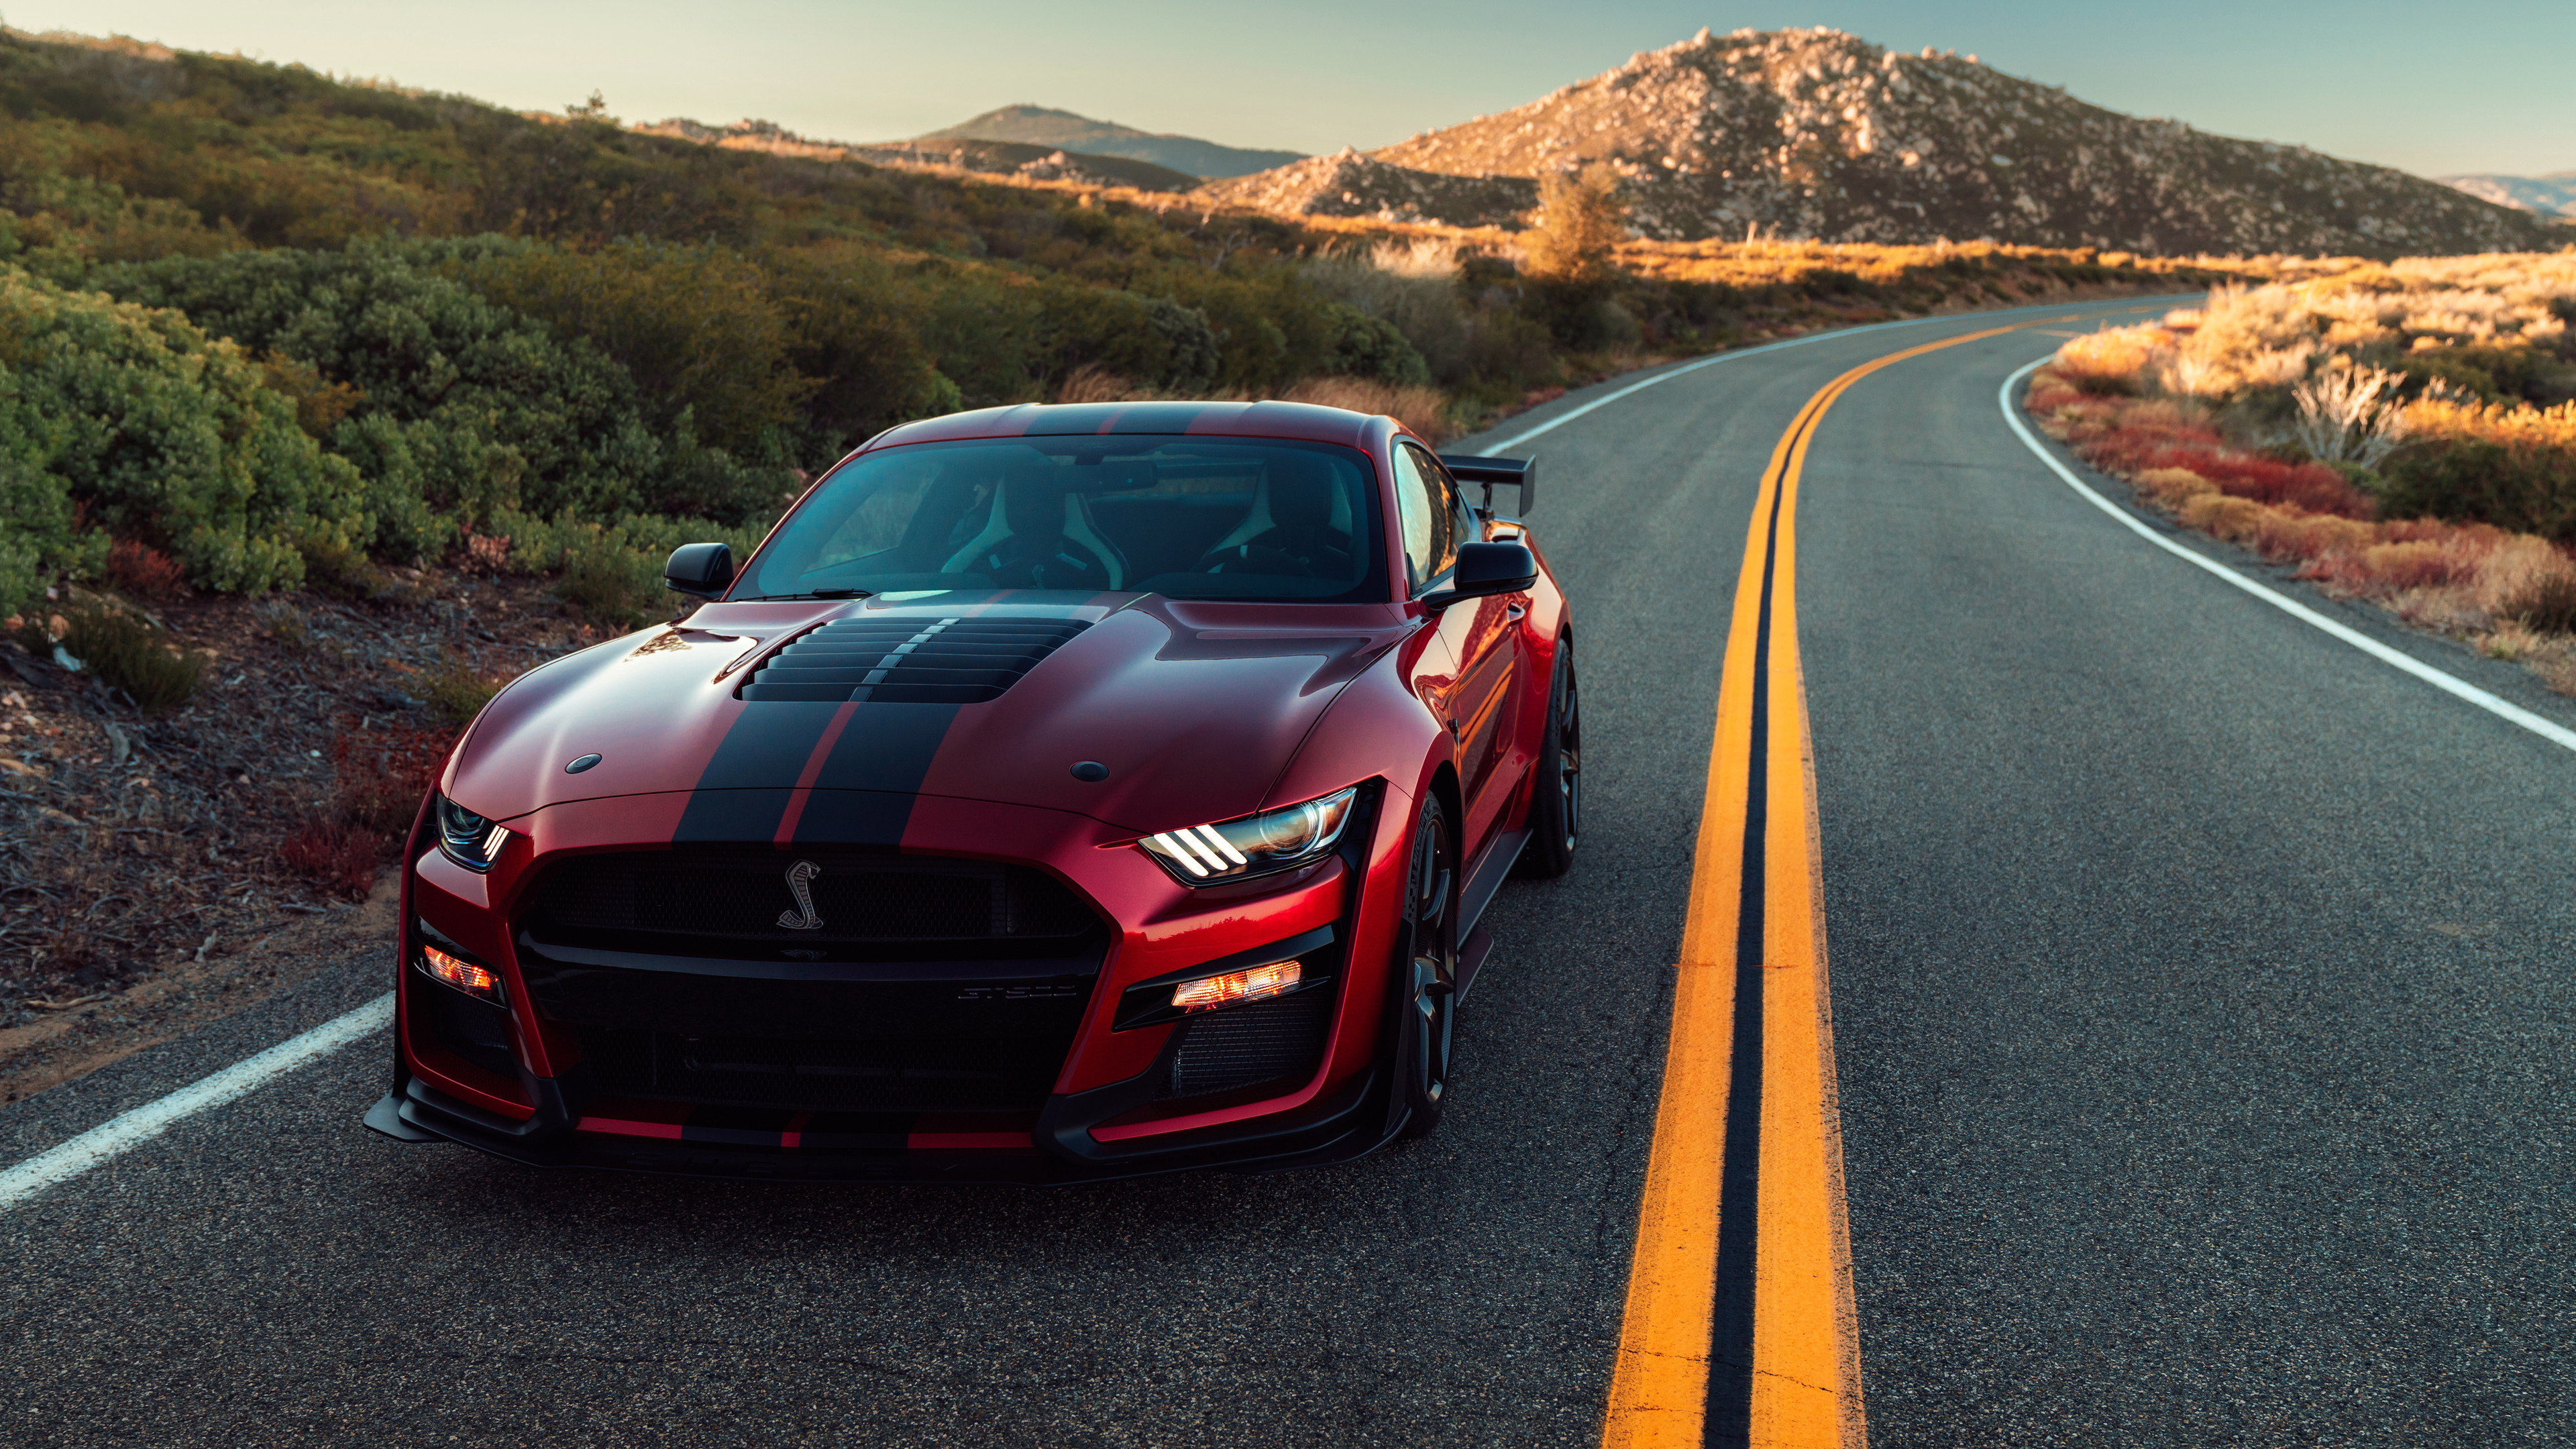 Wallpaper 4k 2020 Ford Mustang Shelby Gt500 4k 2019 Cars Wallpapers